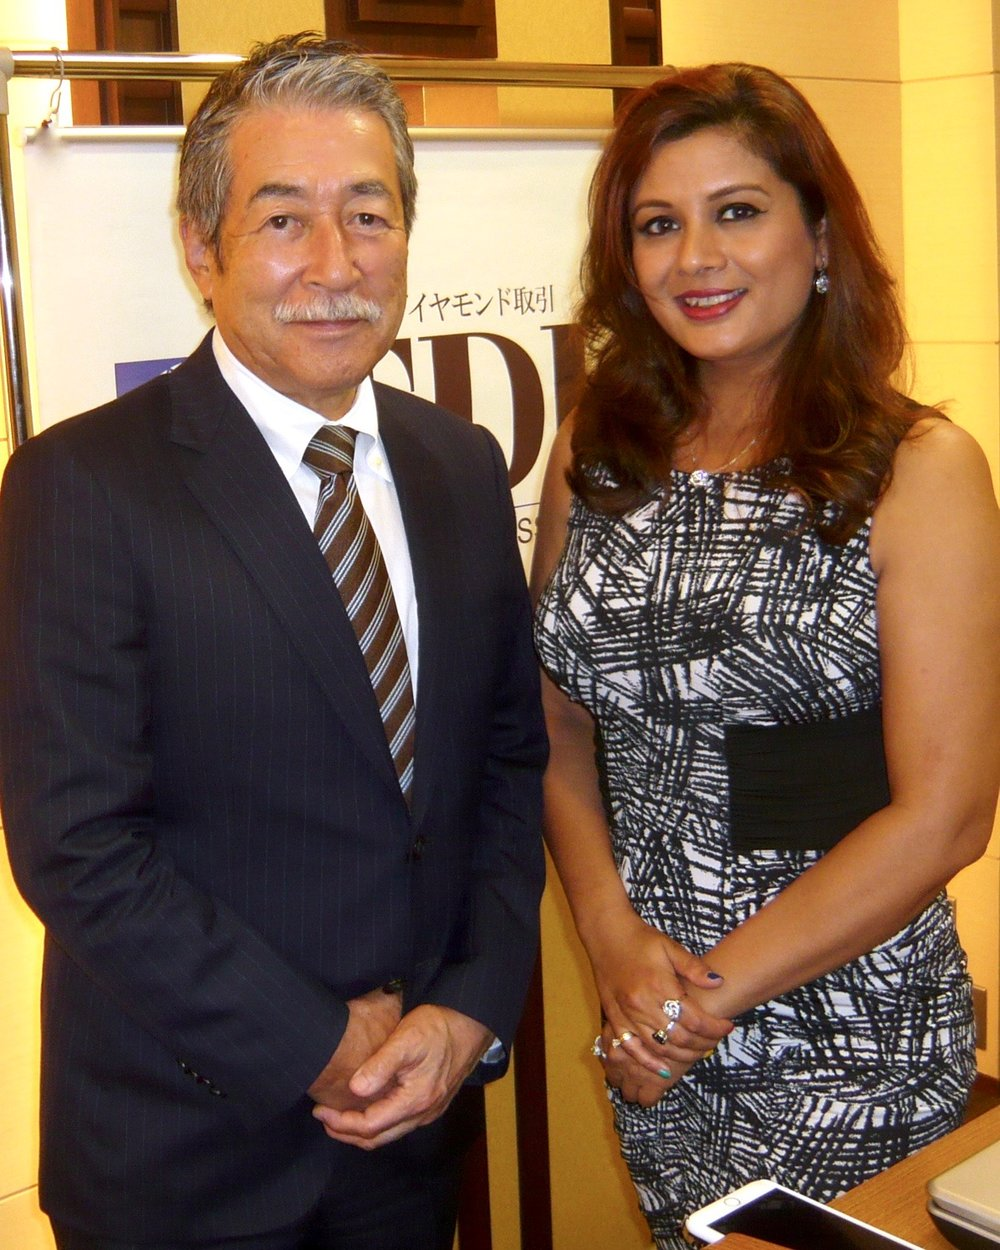 President of the Tokyo Diamond Exchange, Michio Iwasaki with jewelry designer, painter and professor, Reena Ahluwalia.